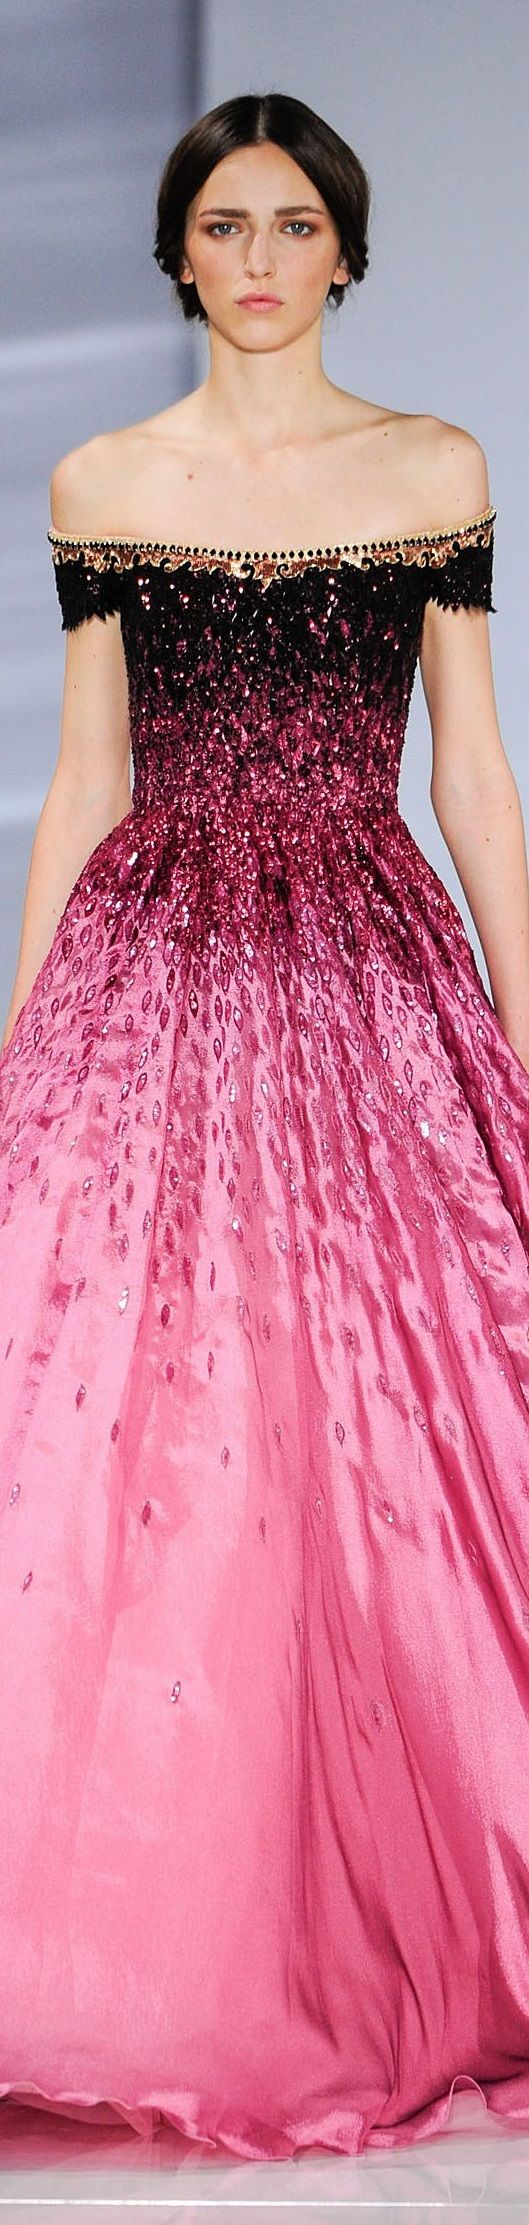 GEORGES HOBEIKA fall 2015 couture 1000 Petaled Strokes